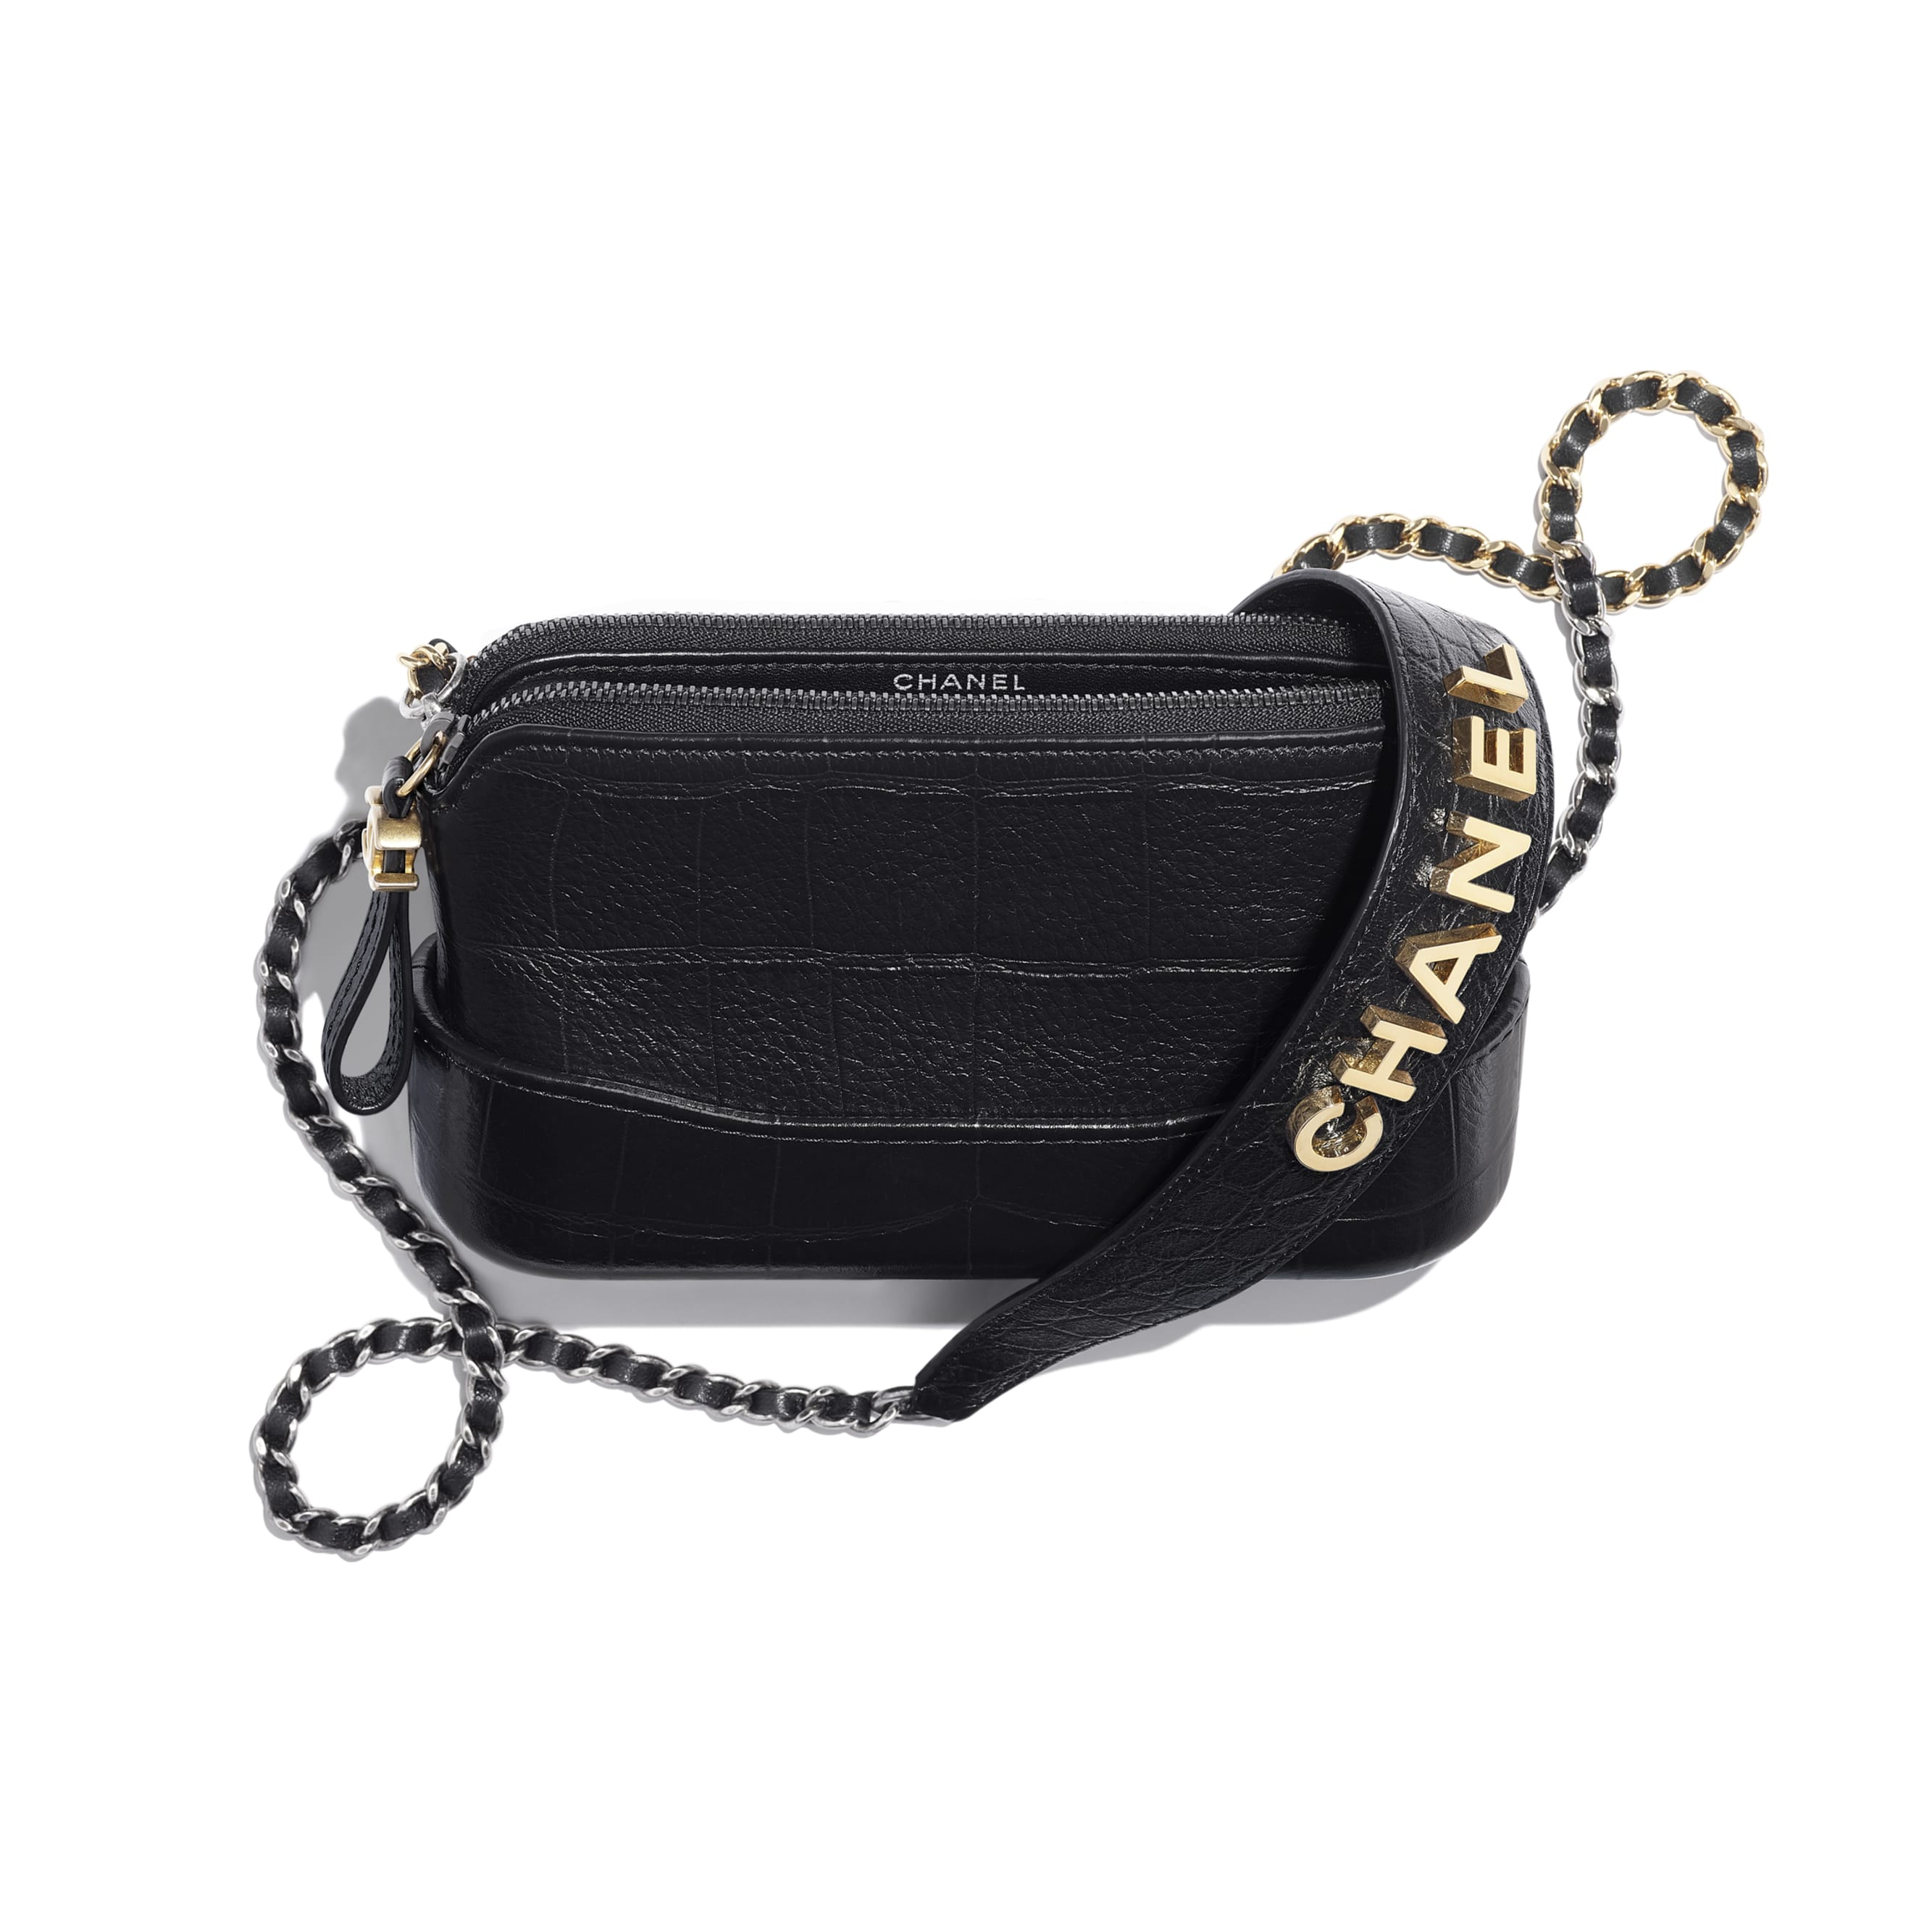 Clutch With Chain - Black - Crocodile Embossed Calfskin, Gold-Tone & Silver-Tone Metal - CHANEL - Other view - see standard sized version